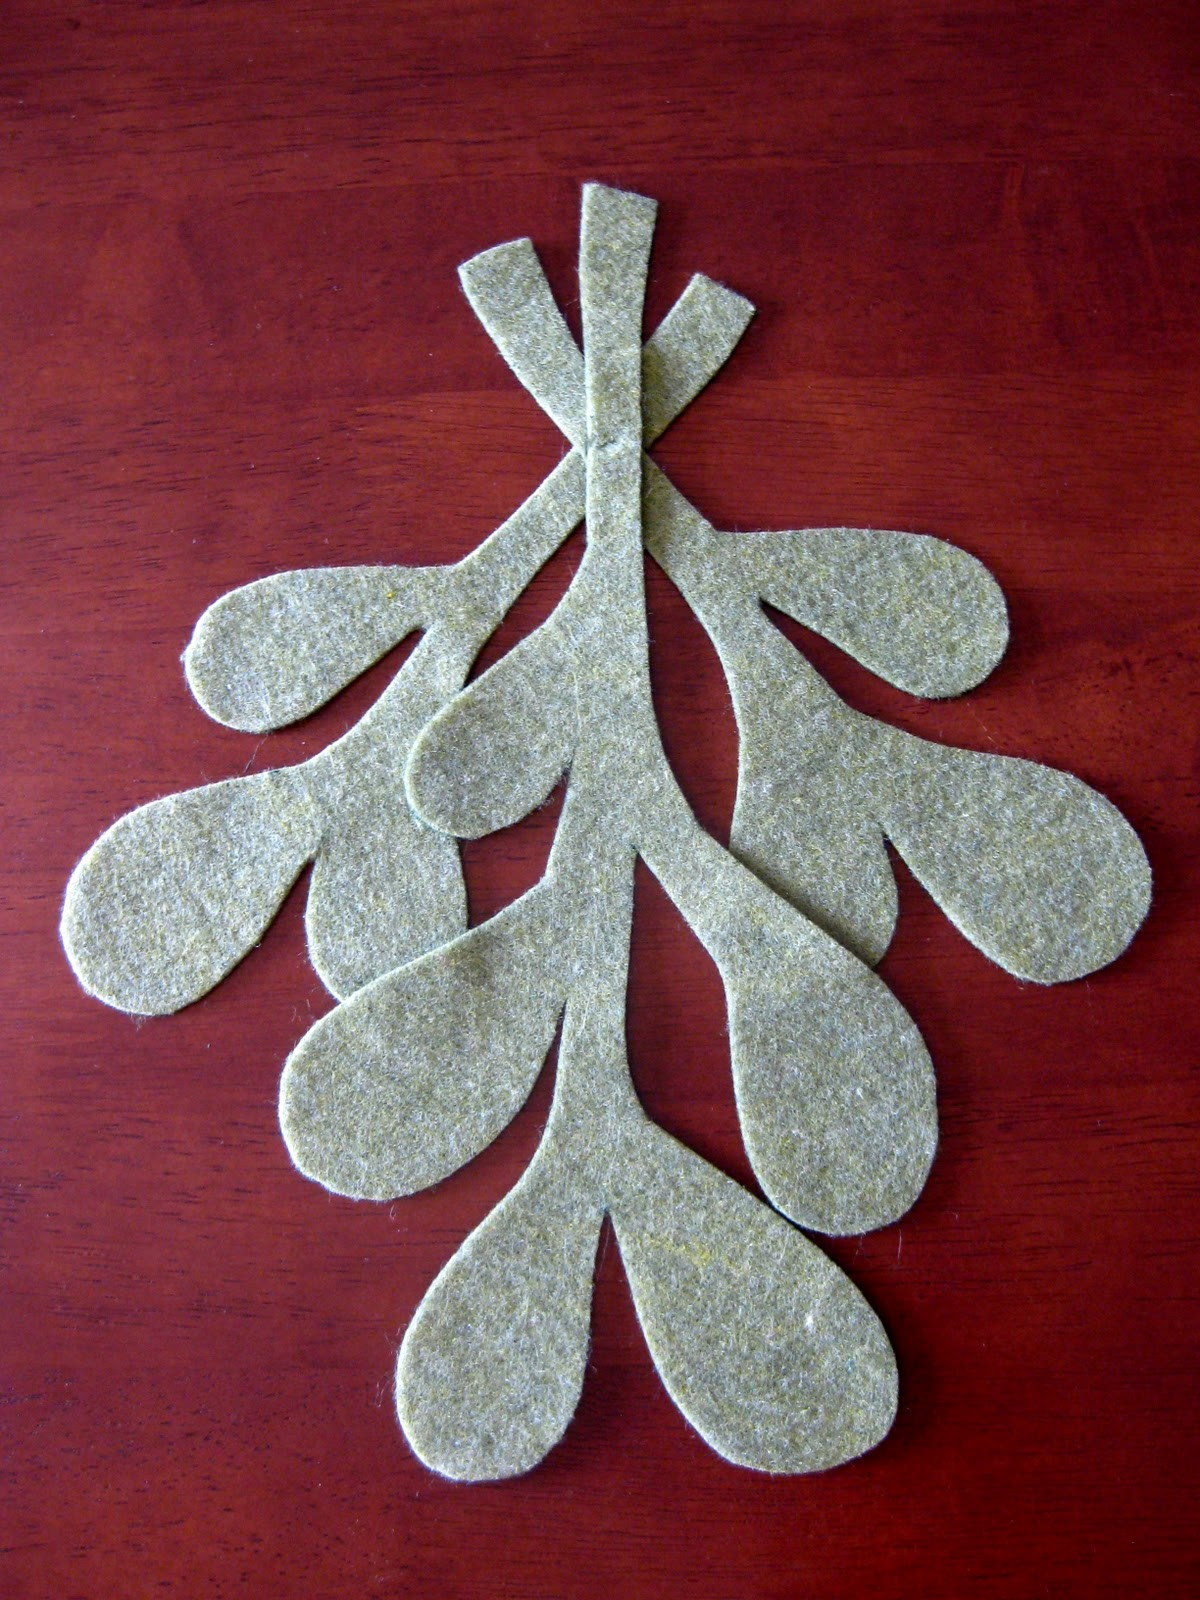 How to make scrapbook decorations - Make Your Own Mistletoe Tutorial